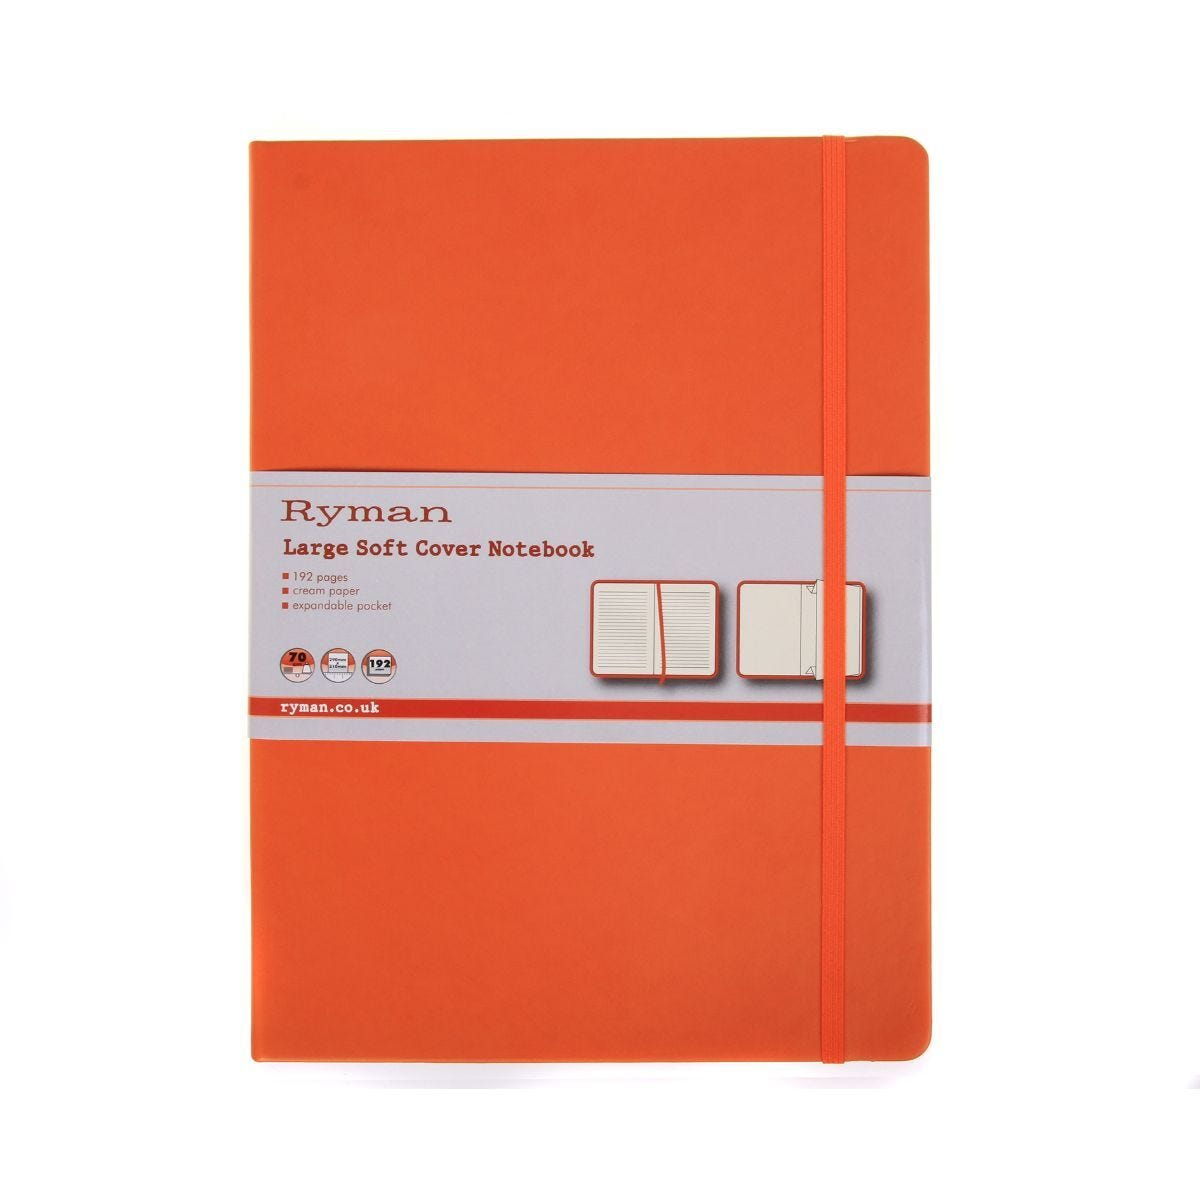 Ryman Soft Cover Notebook Large Ruled 192 Pages 96 Sheets Orange